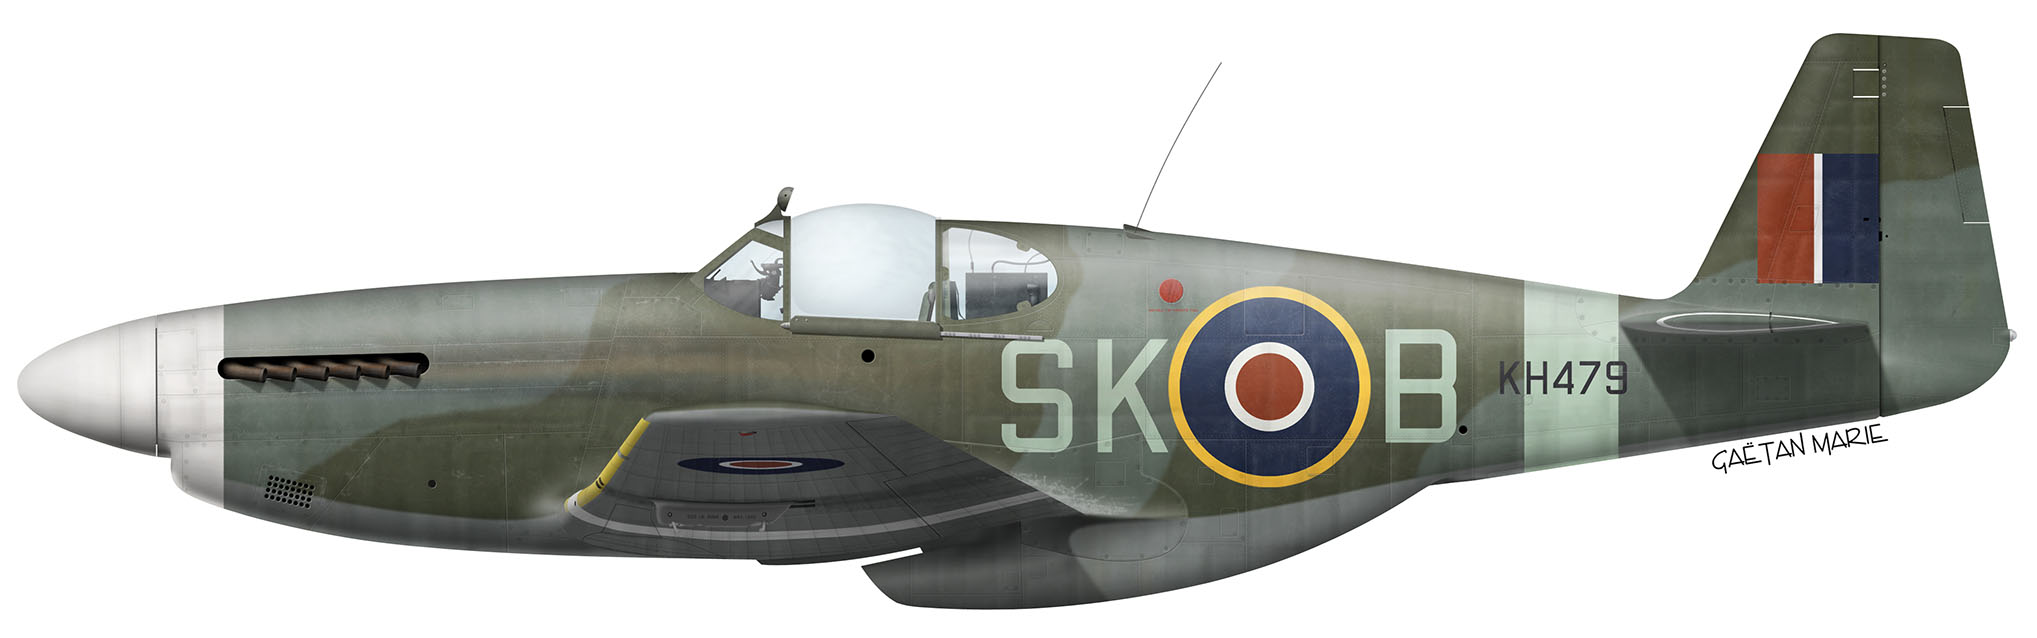 UK, Mustang Mk III, KH479, SK-B, John Plagis, No 165 Squadron, early 1945